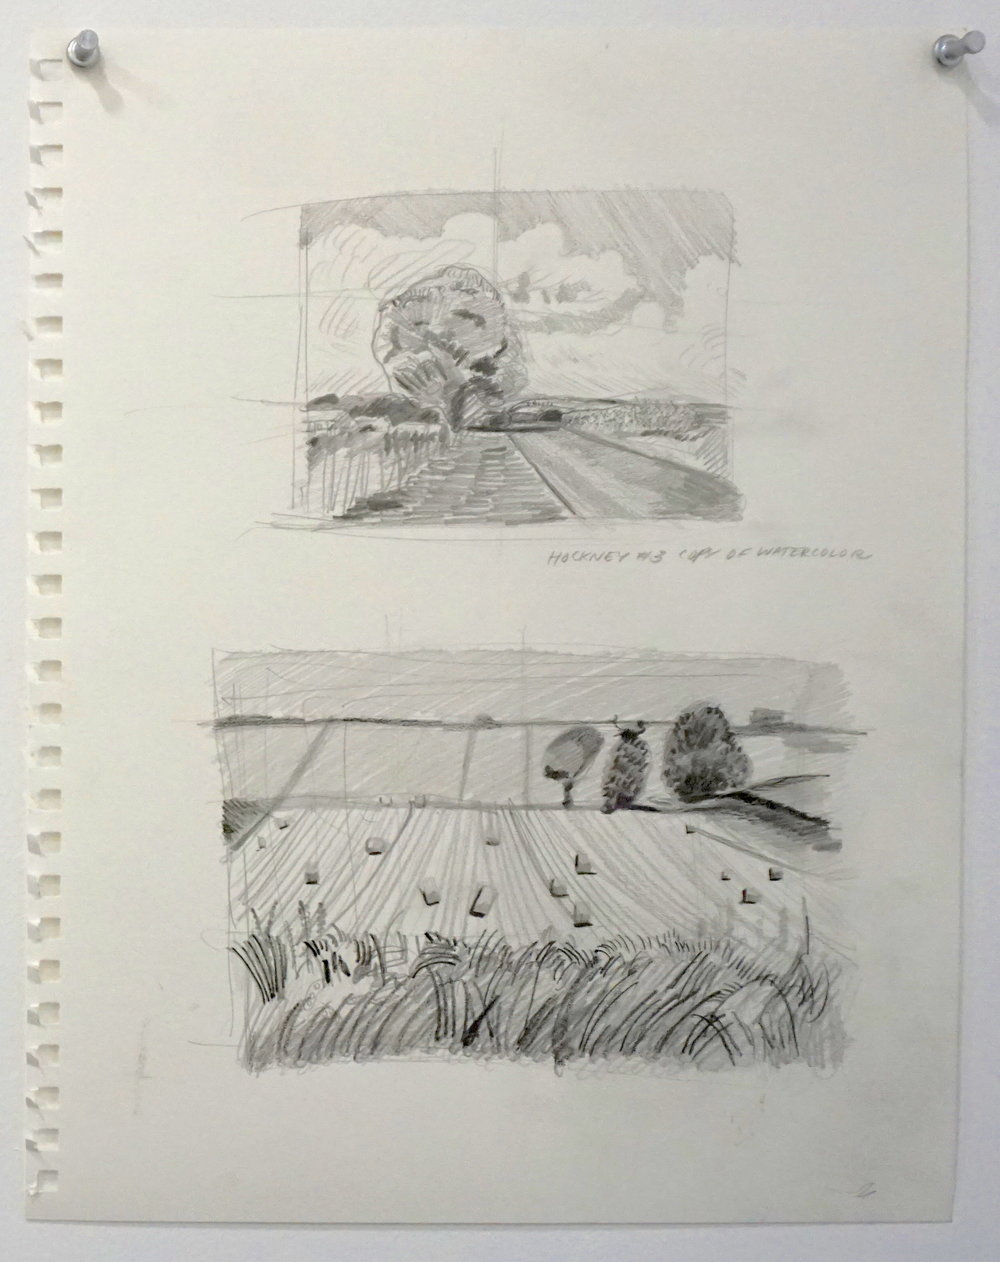 Hockney drawings by kerbi 2.jpeg